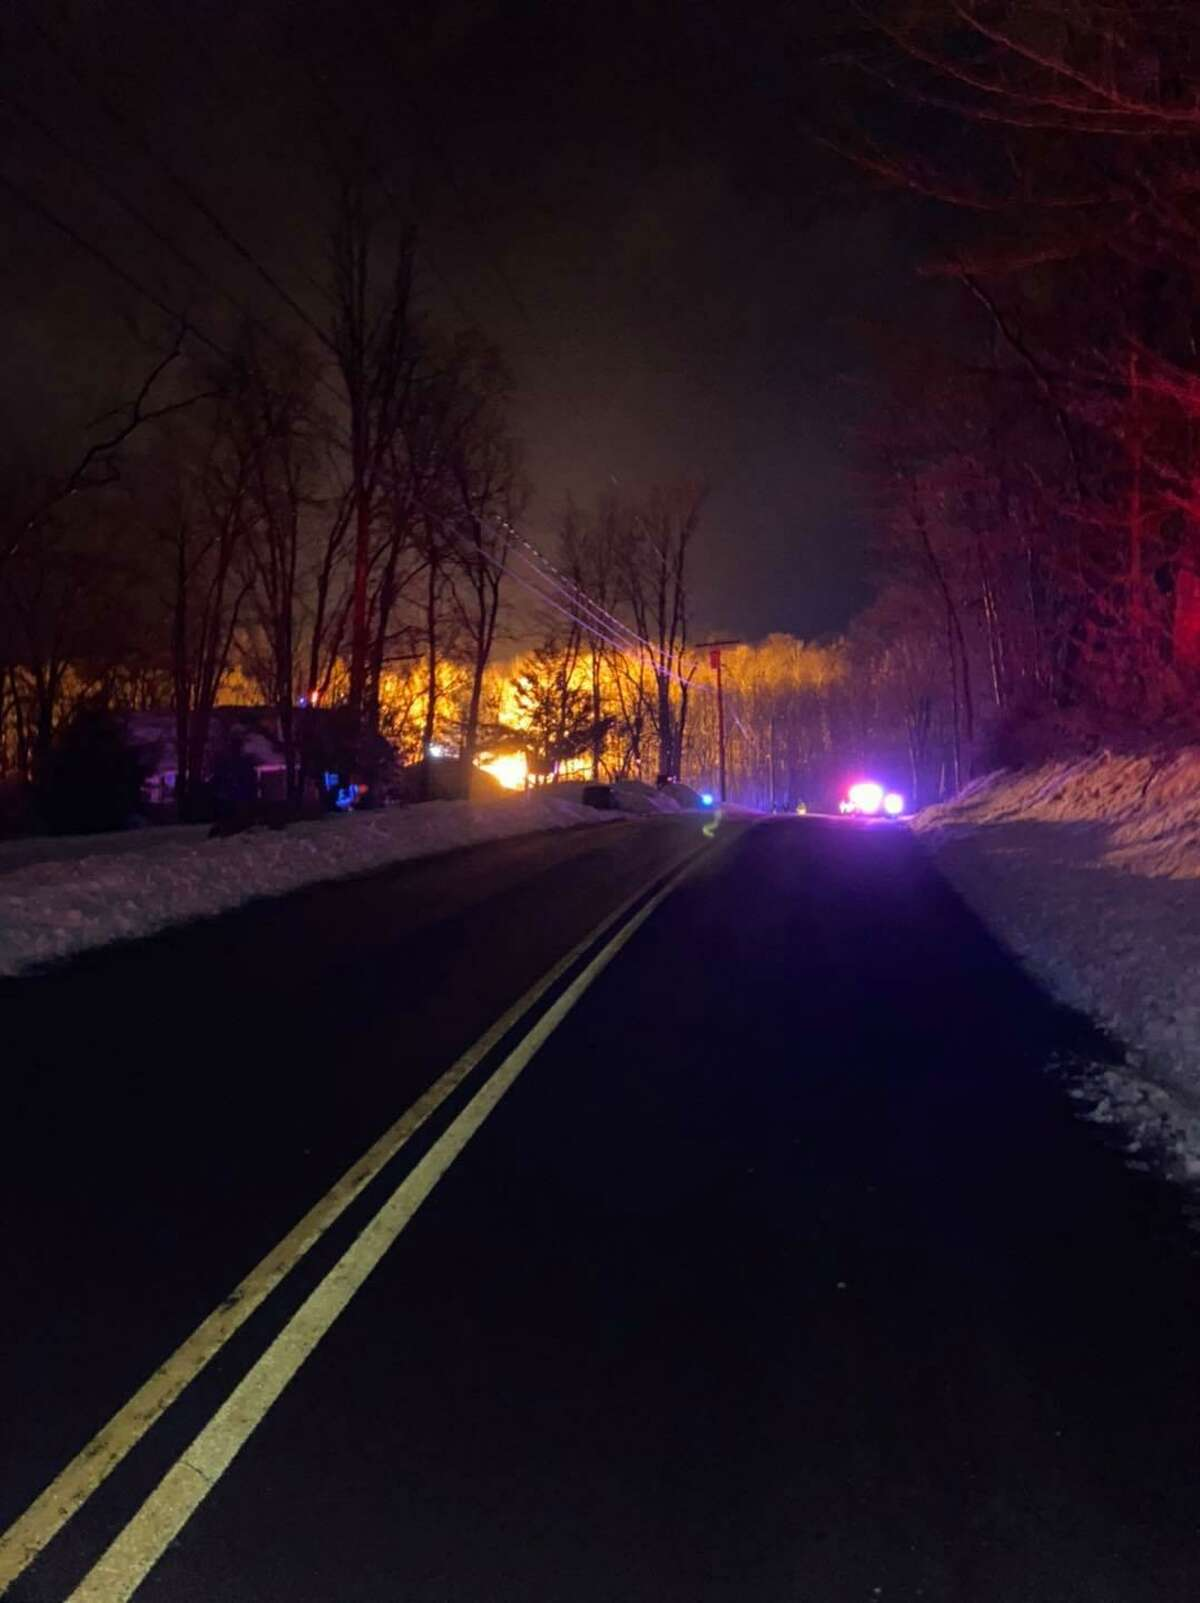 Part of Hillandale Road in Brookfield, Conn., was shut down Monday night following a fiery crash involving a pickup truck and telephone pole.